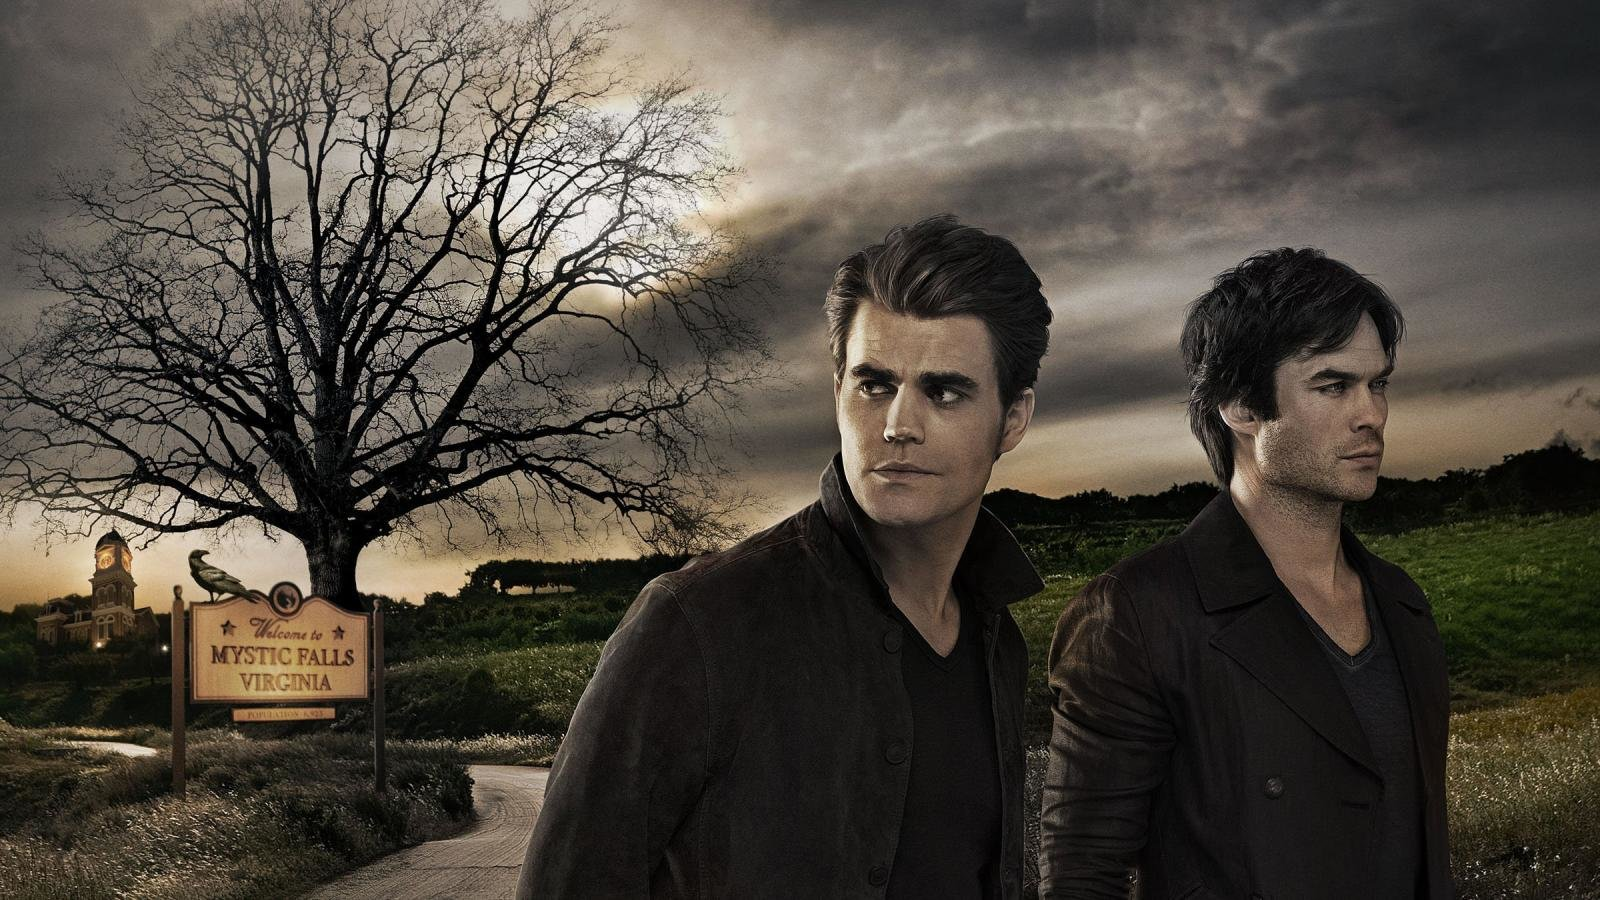 High resolution The Vampire Diaries hd 1600x900 wallpaper ID:464940 for computer